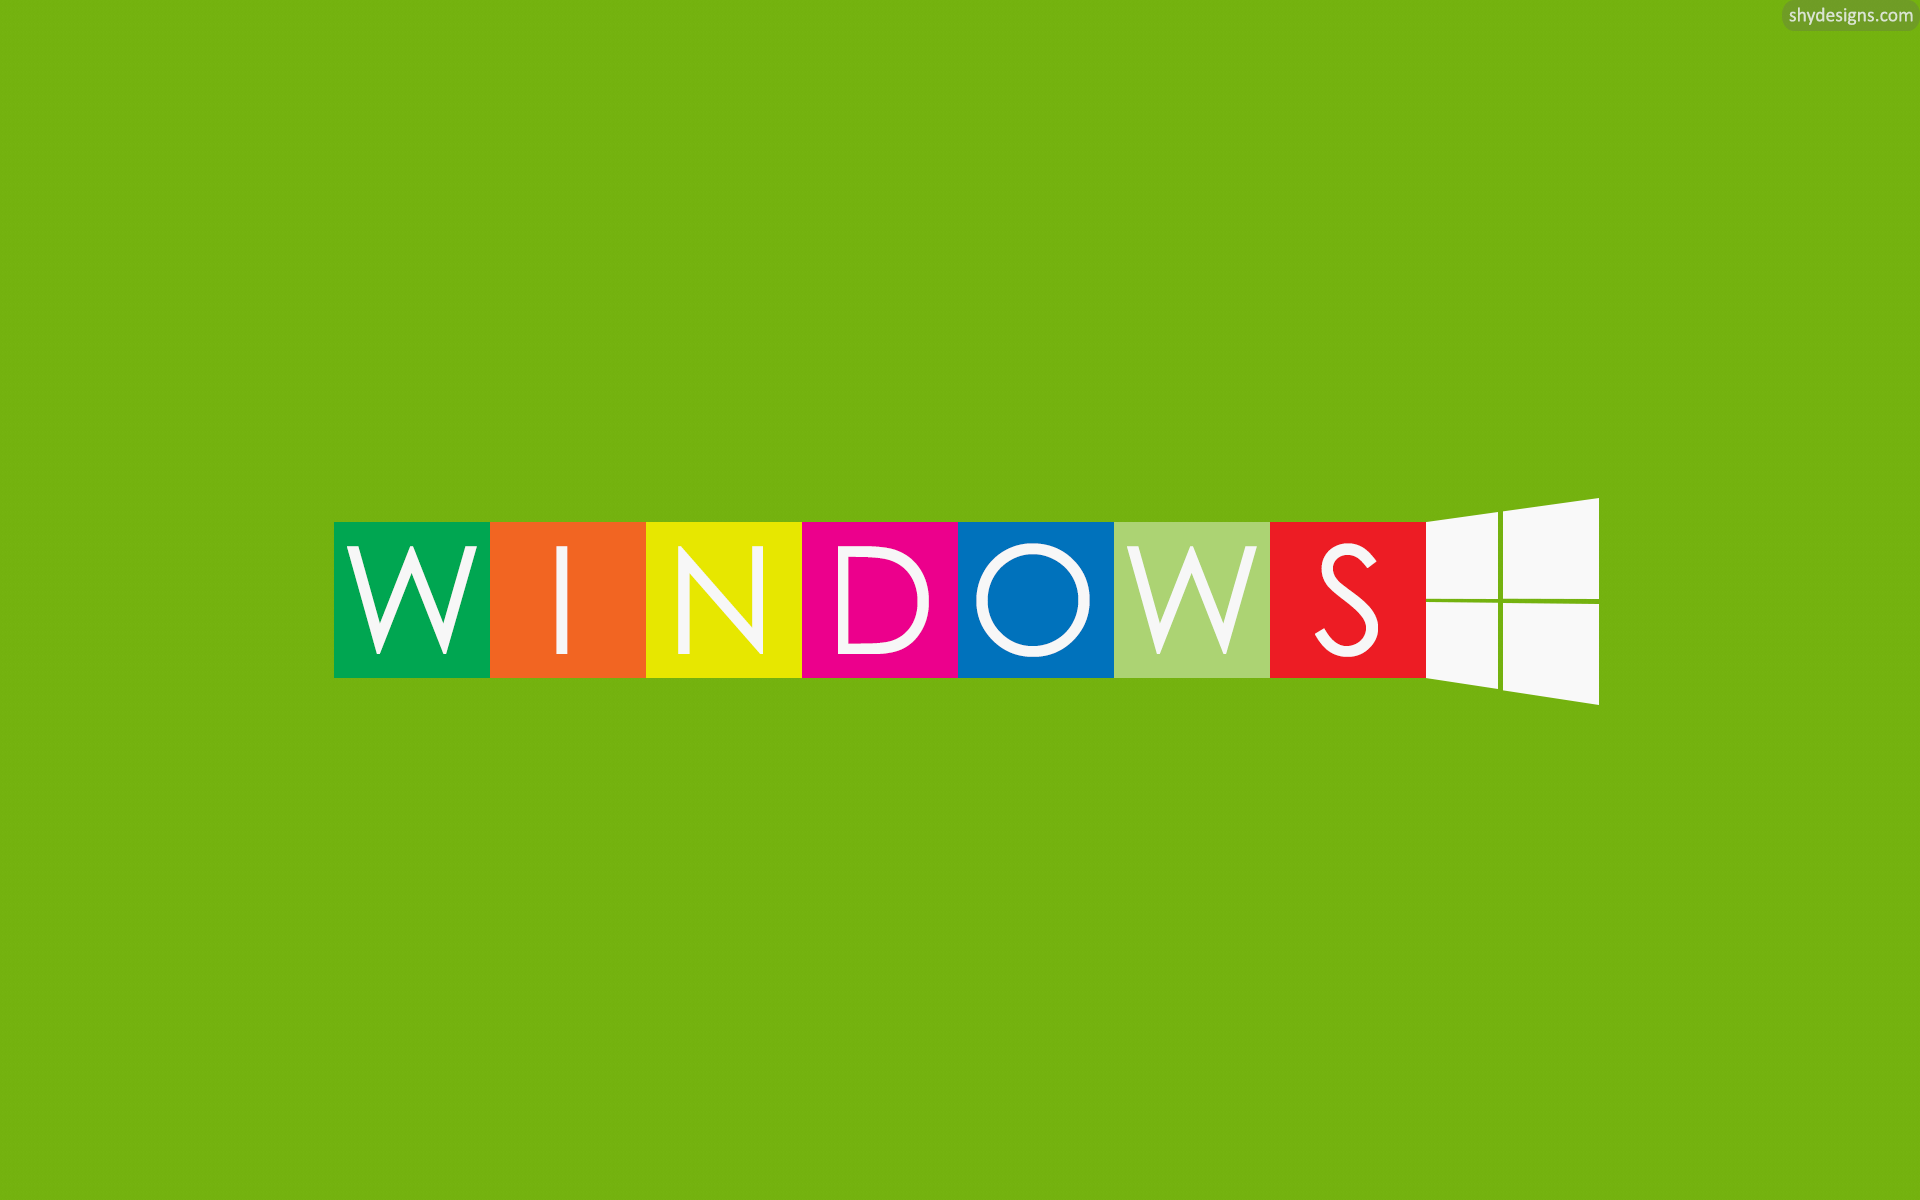 windows 8.1 hd wallpapers 1080p - wallpapersafari